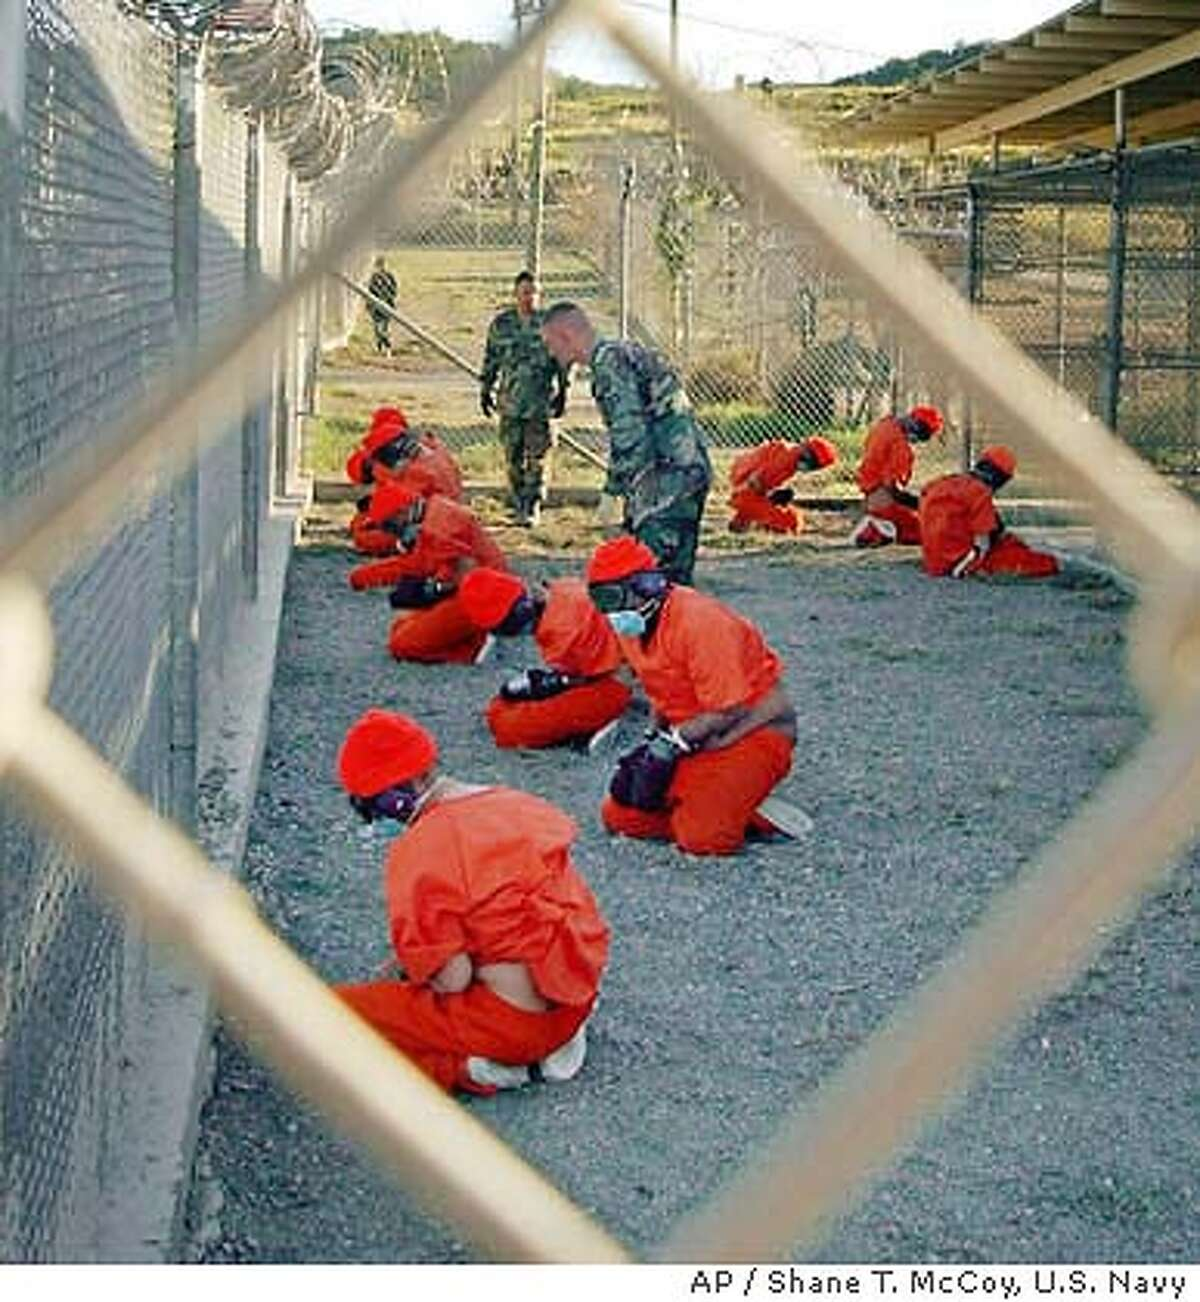 ** FILE ** Taliban and al-Qaida detainees sit in a holding area at Camp X-Ray at Guantanamo Bay, Cuba, during in-processing to the temporary detention facility in this Jan. 11, 2002 file photo. Controversy over prisoner abuse at U.S.-run prisons in Iraq and Afghanistan has left the Guantanamo Bay, Cuba, detention facility for terrorist suspects largely untouched. but that may soon change. A senior Navy admiral who briefly visited Guantanamo Bay in early May has recommended a more in depth look at how prisoners were treated there. (AP Photo/U.S. Navy, Shane T.McCoy)